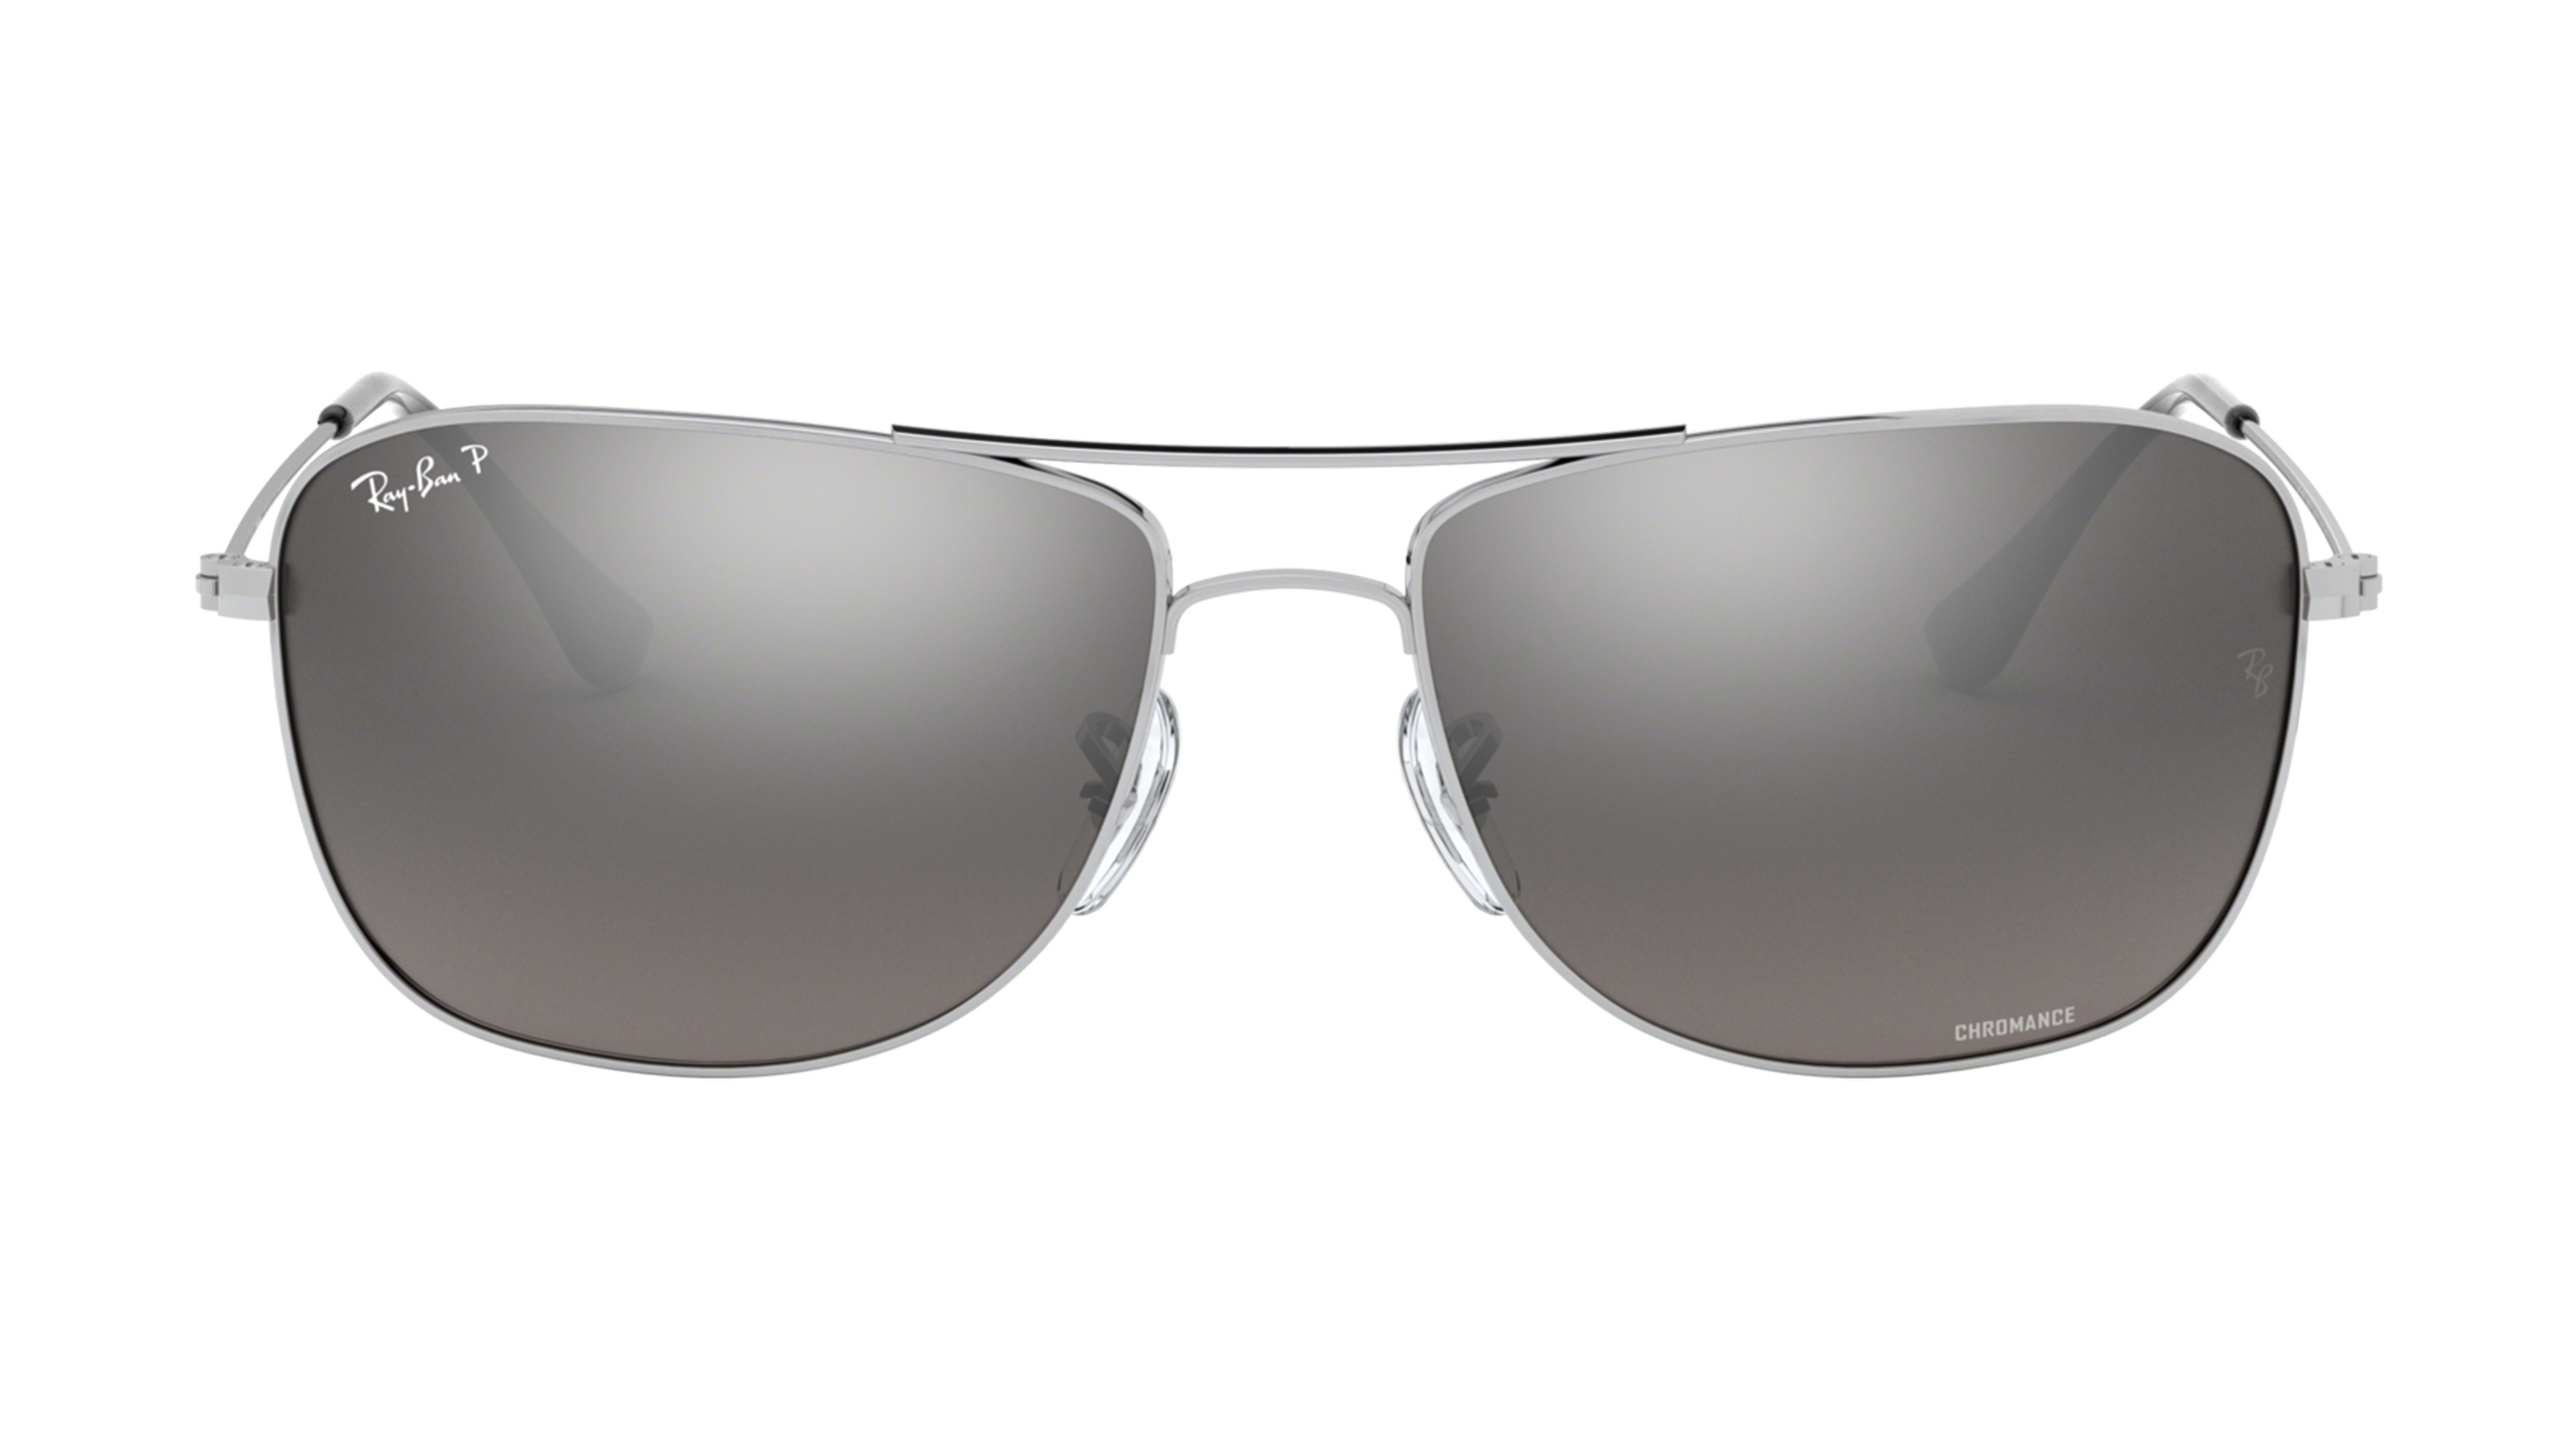 8053672582529-front-Ray-Ban-0RB3543-003-5J